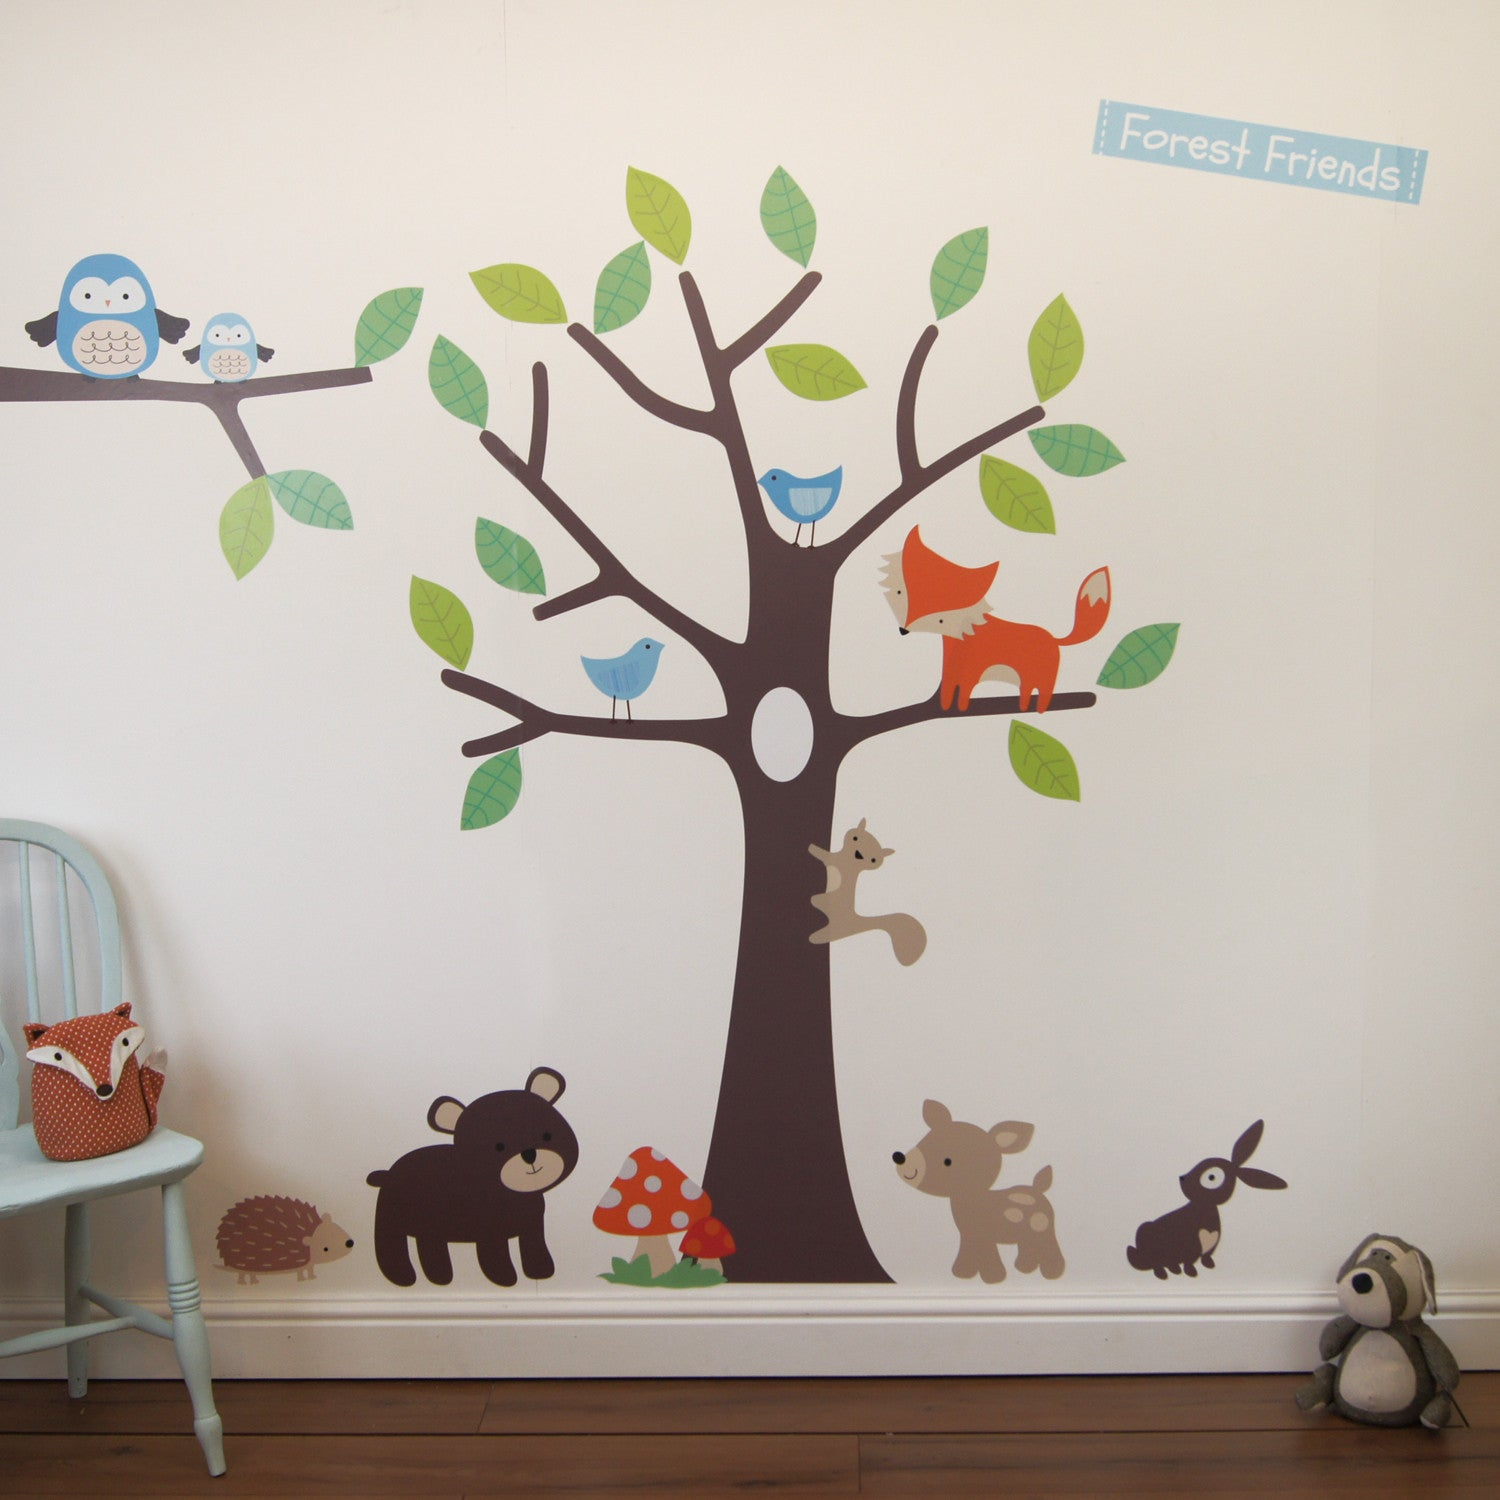 Forest Friends Tree Wall Stickers Parkins Interiors